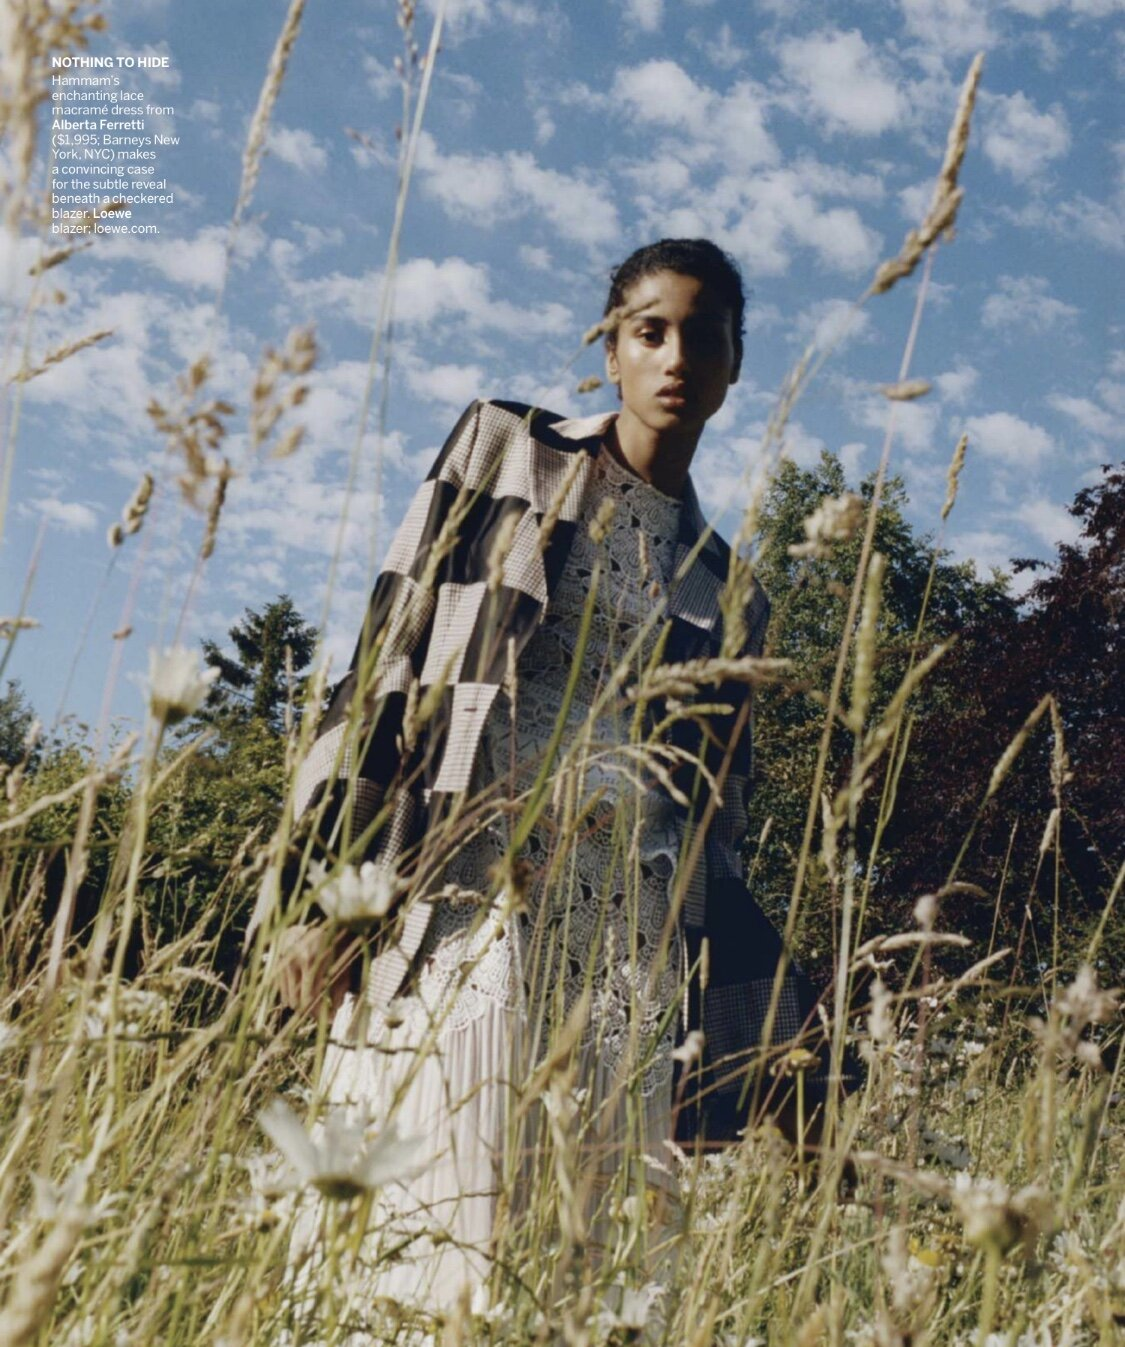 Imaan Hannam by Tyler Mitchell in Blooming Anew for Vogue US Sept 2019 (4).jpg